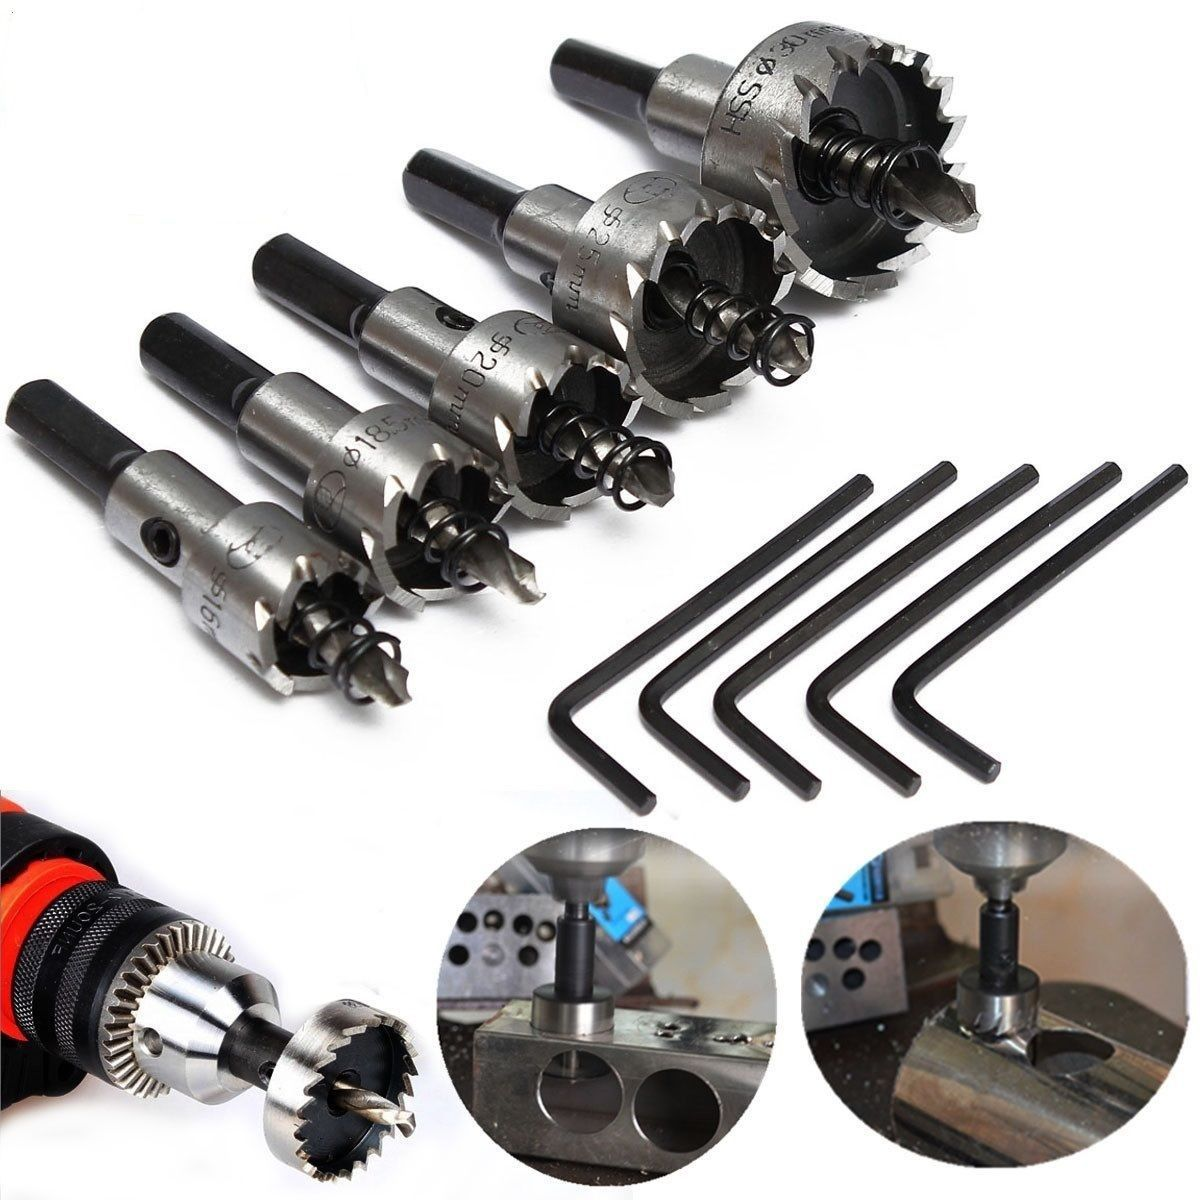 Details About 5pcs 16 30mm Hole Saw Cutter Drill Bit Set Hss Hole Saw Drill Sheet Metal Reamer Hole Saw Sheet Metal Stainless Steel Metal